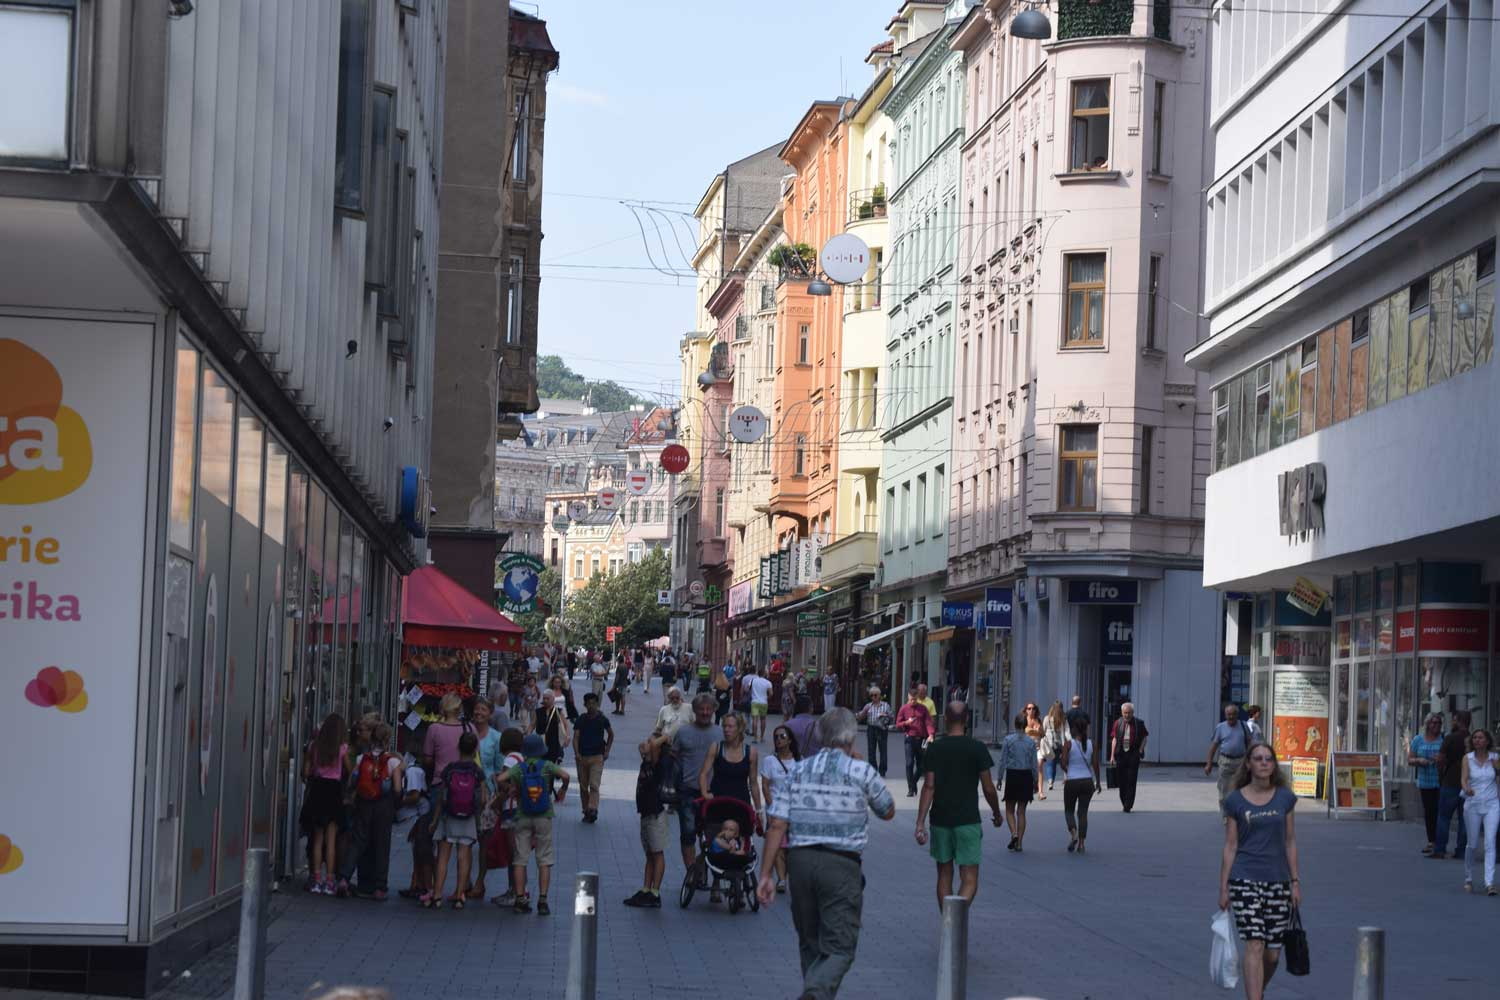 Brno's pedestrian shopping promenade felt like a smaller version of what you'd find in Vienna.